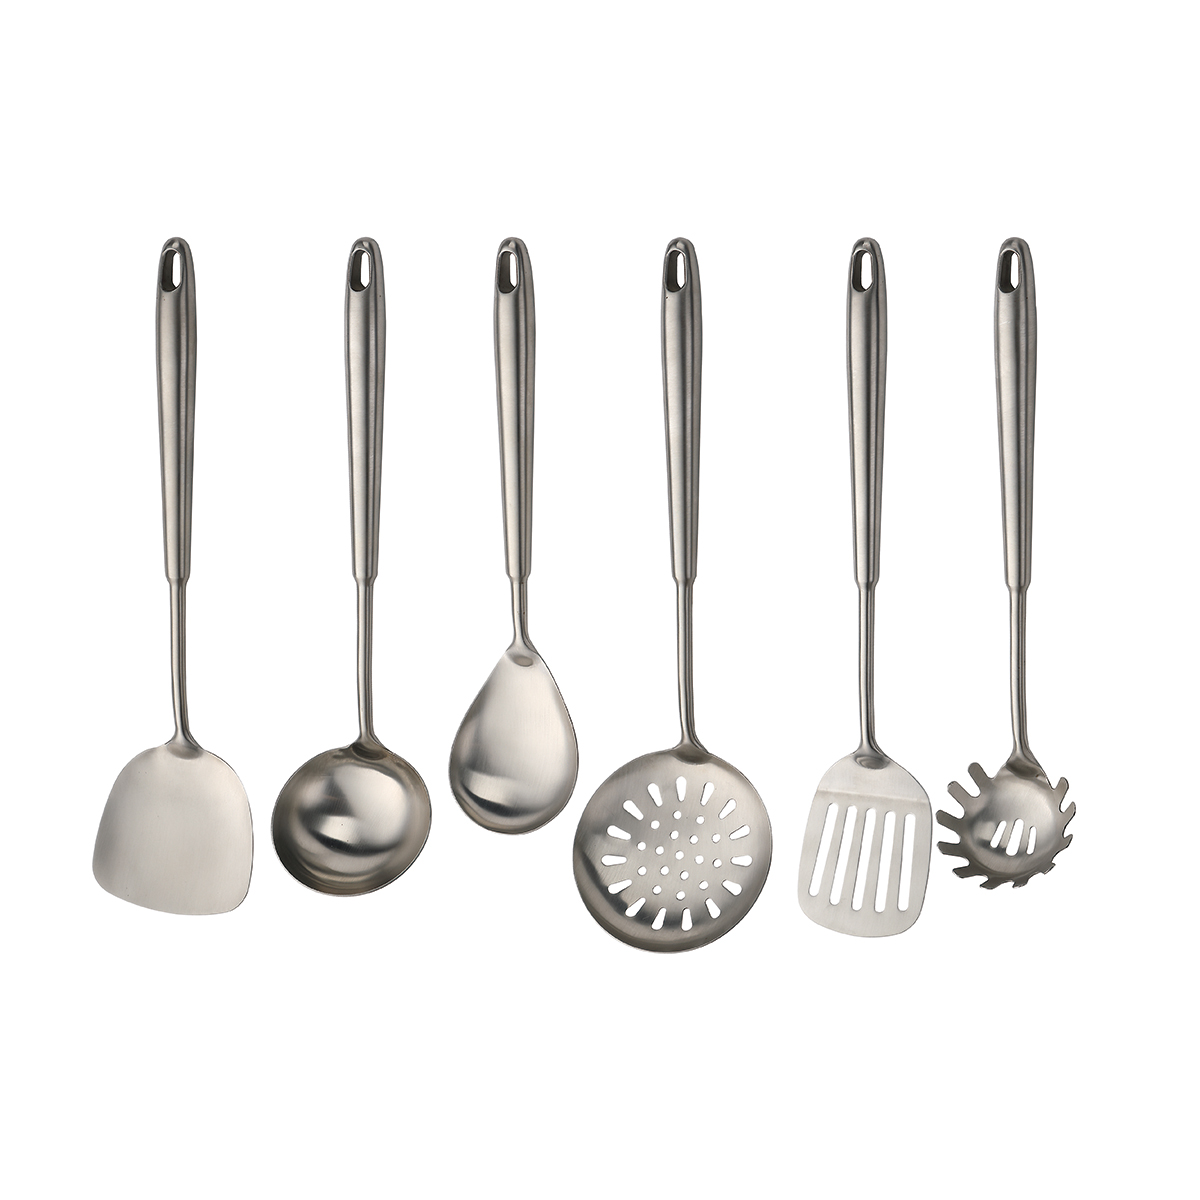 SUS304 top quality Kitchenware Stainless steel kitchen cooking utensils set